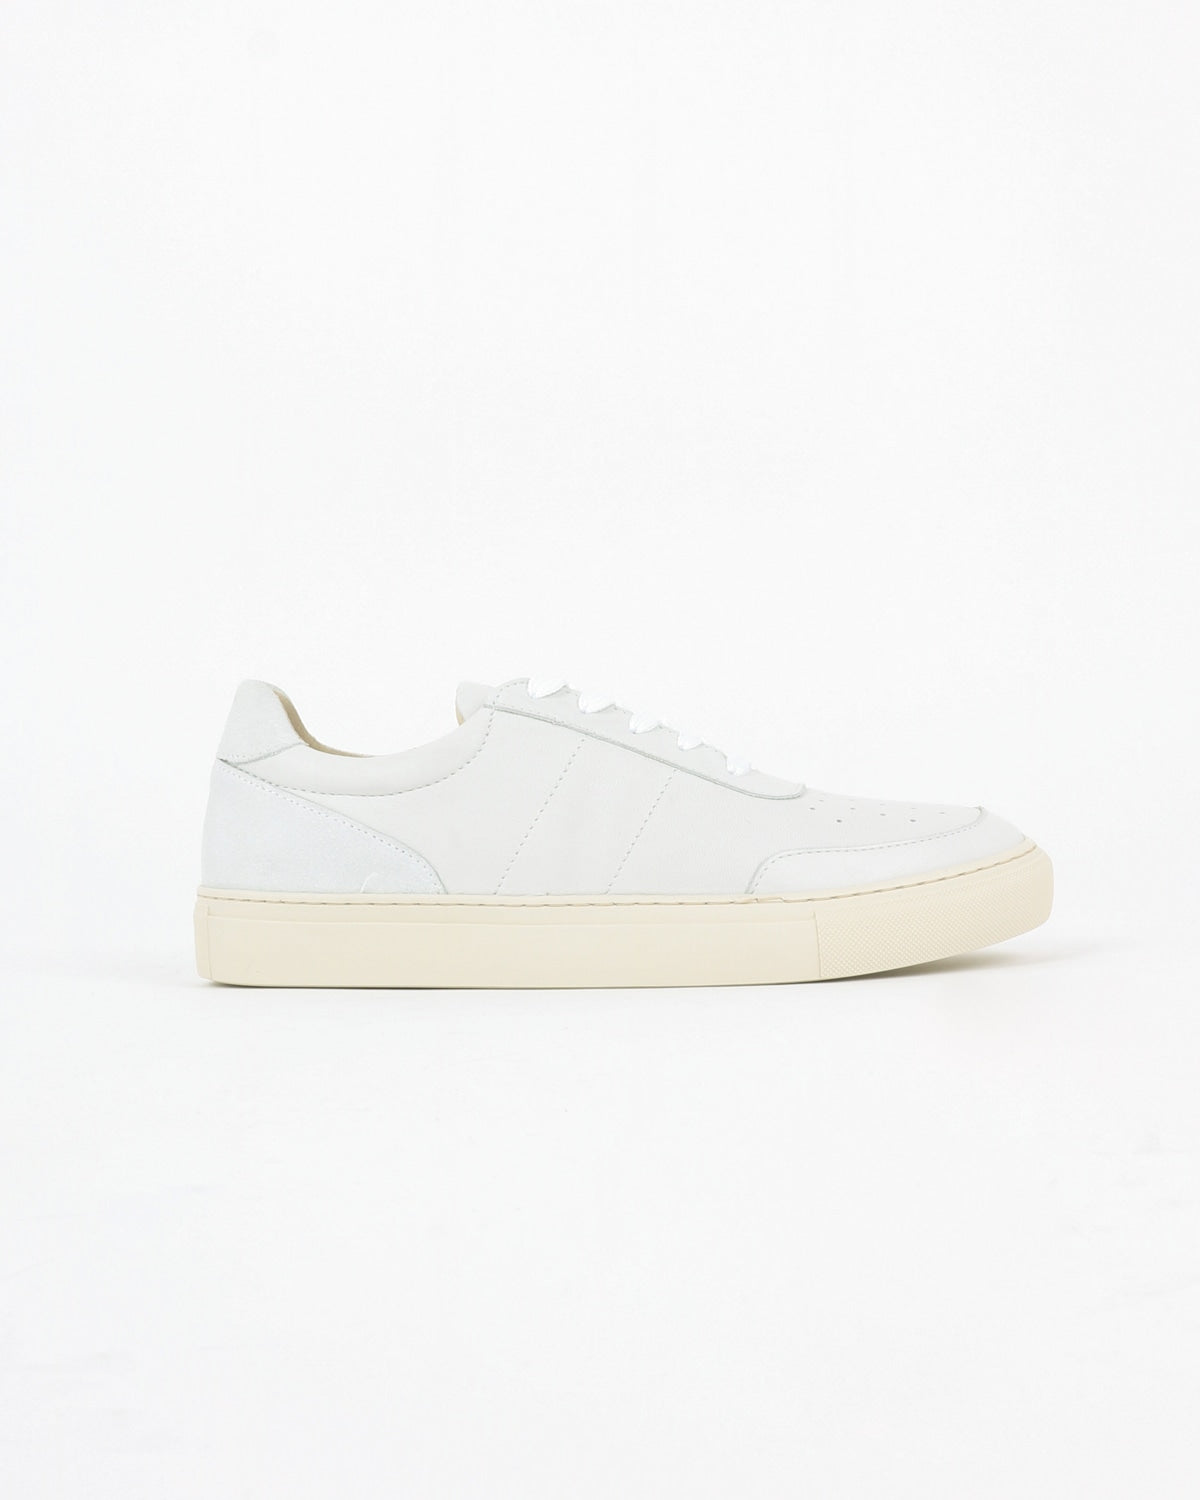 garment project_base low sneaker_white leather_view_1_4